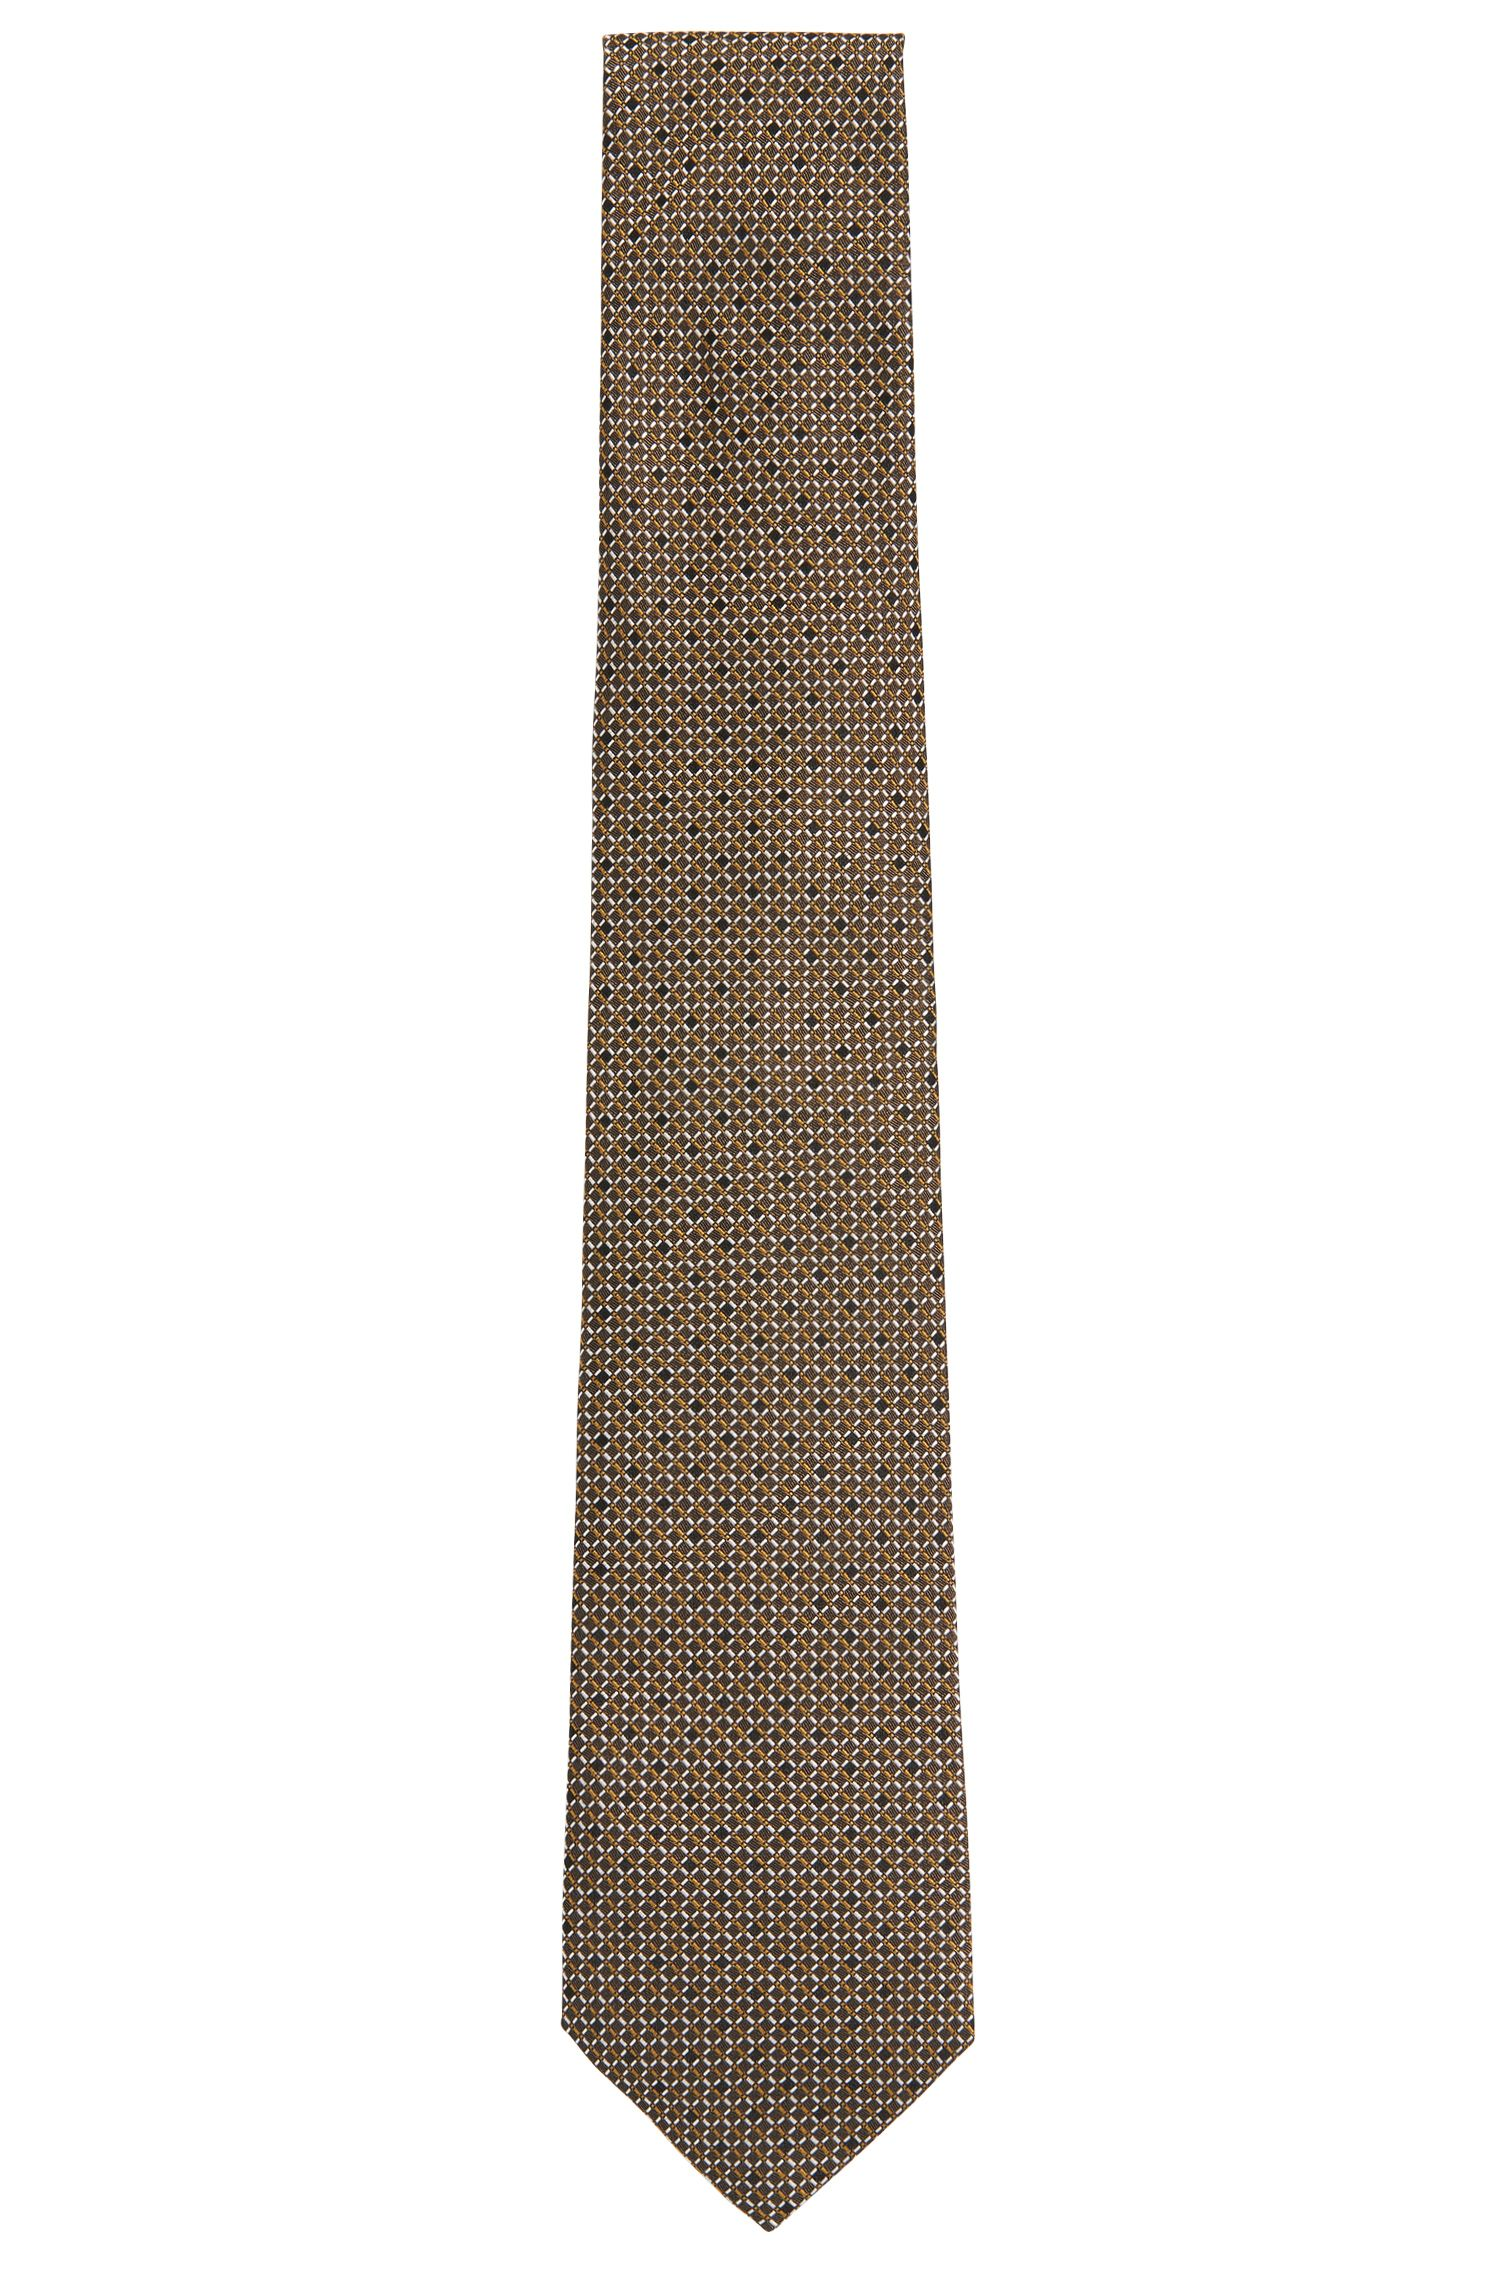 All-over patterned Tailored silk tie: 'T-Tie 7.5 cm'